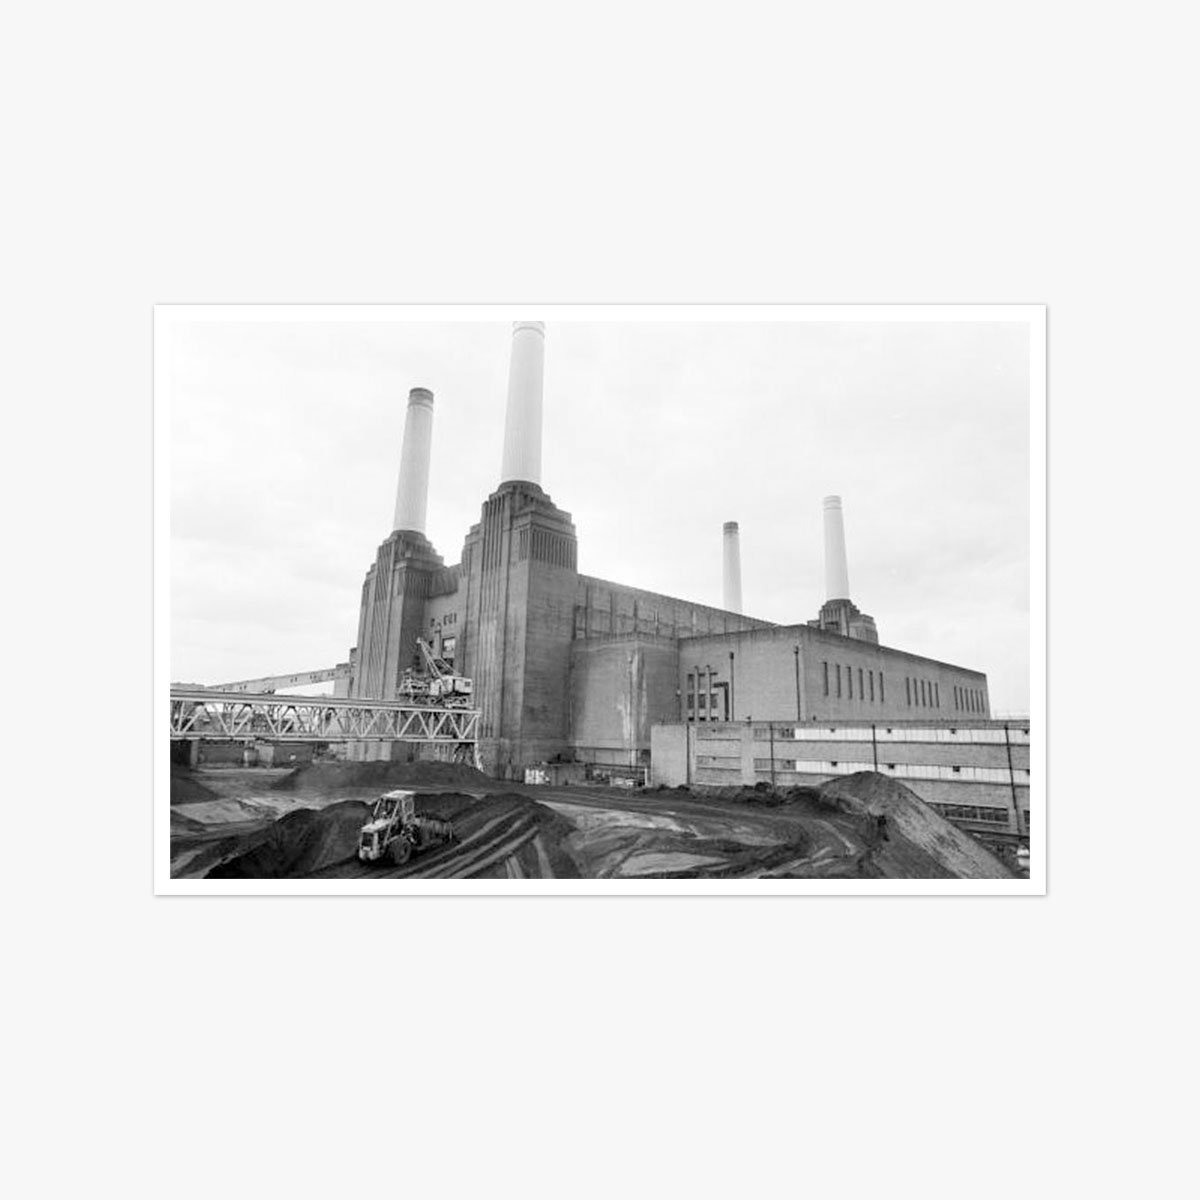 Battersea Power Station by Ian Tyas